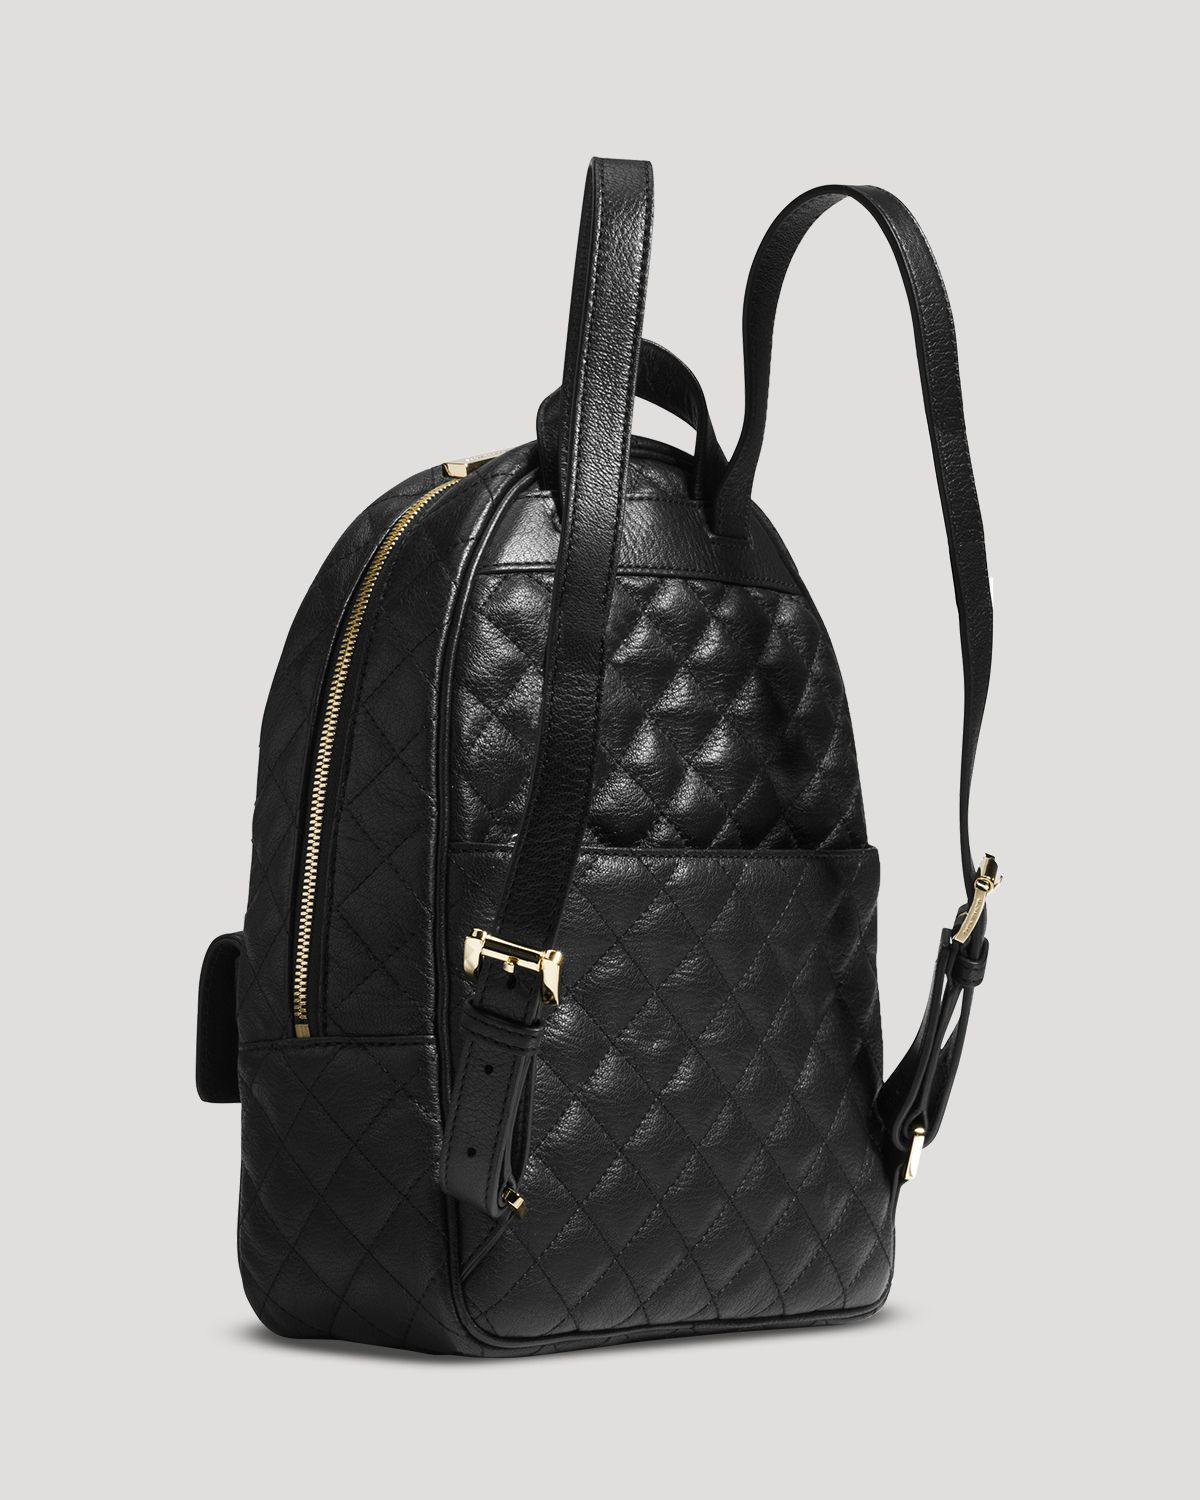 78b3db5b953e Gallery. Previously sold at: Bloomingdale's · Women's Michael Kors Quilted  Bag